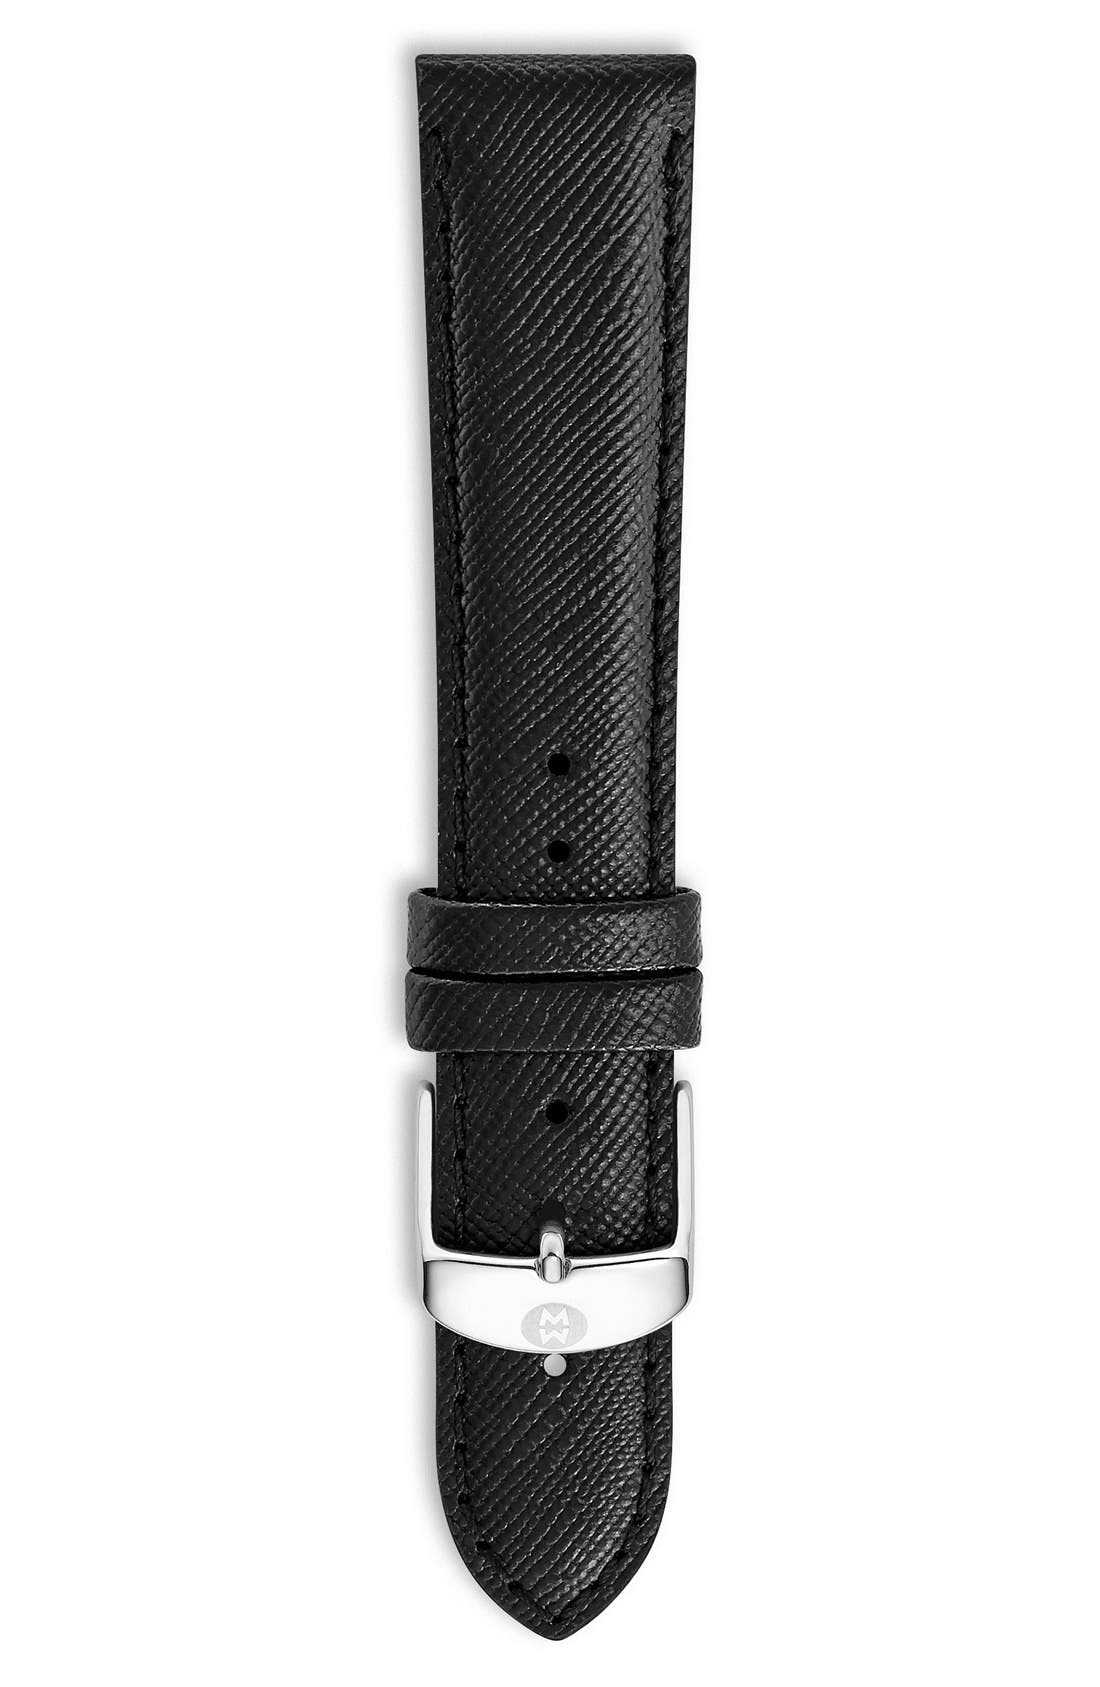 18mm Saffiano Leather Watch Strap,                             Main thumbnail 1, color,                             Jet Black